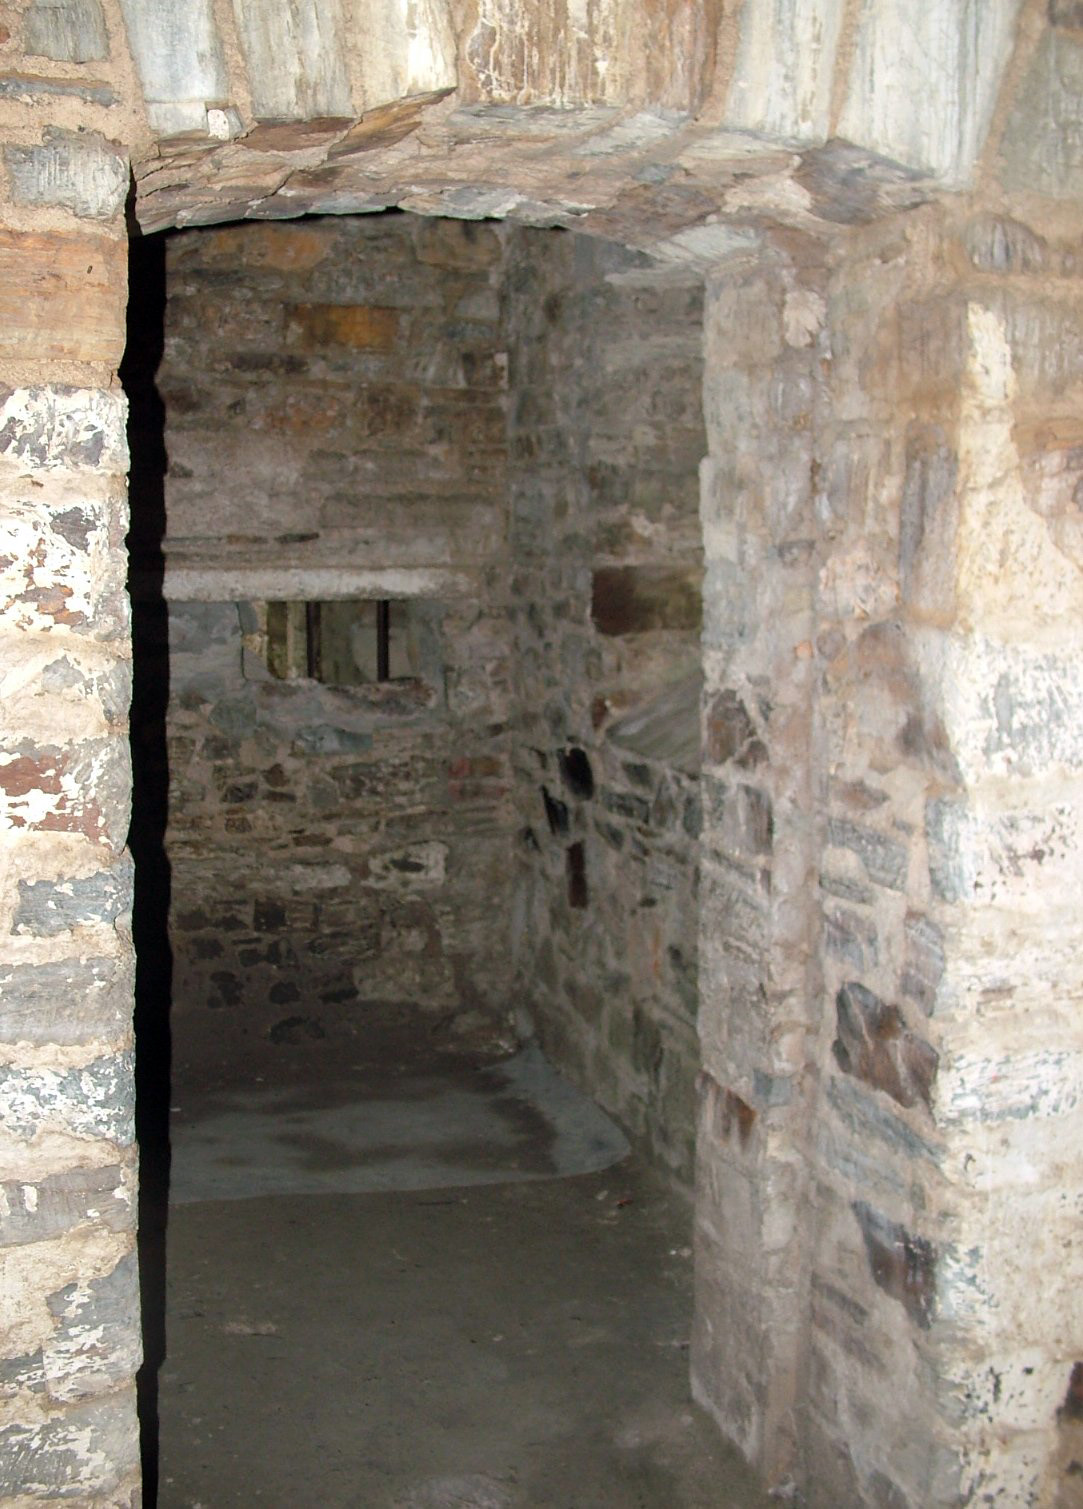 Picture taken at Bodmin Gaol. The former County Prison, was originally built in 1777 and replaced the old Debtor's Prison. The Gaol as it is seen today was largely rebuilt in the 1840's and again in the 1850's each time increasing in size as the population grew. The execution shed would have been us...